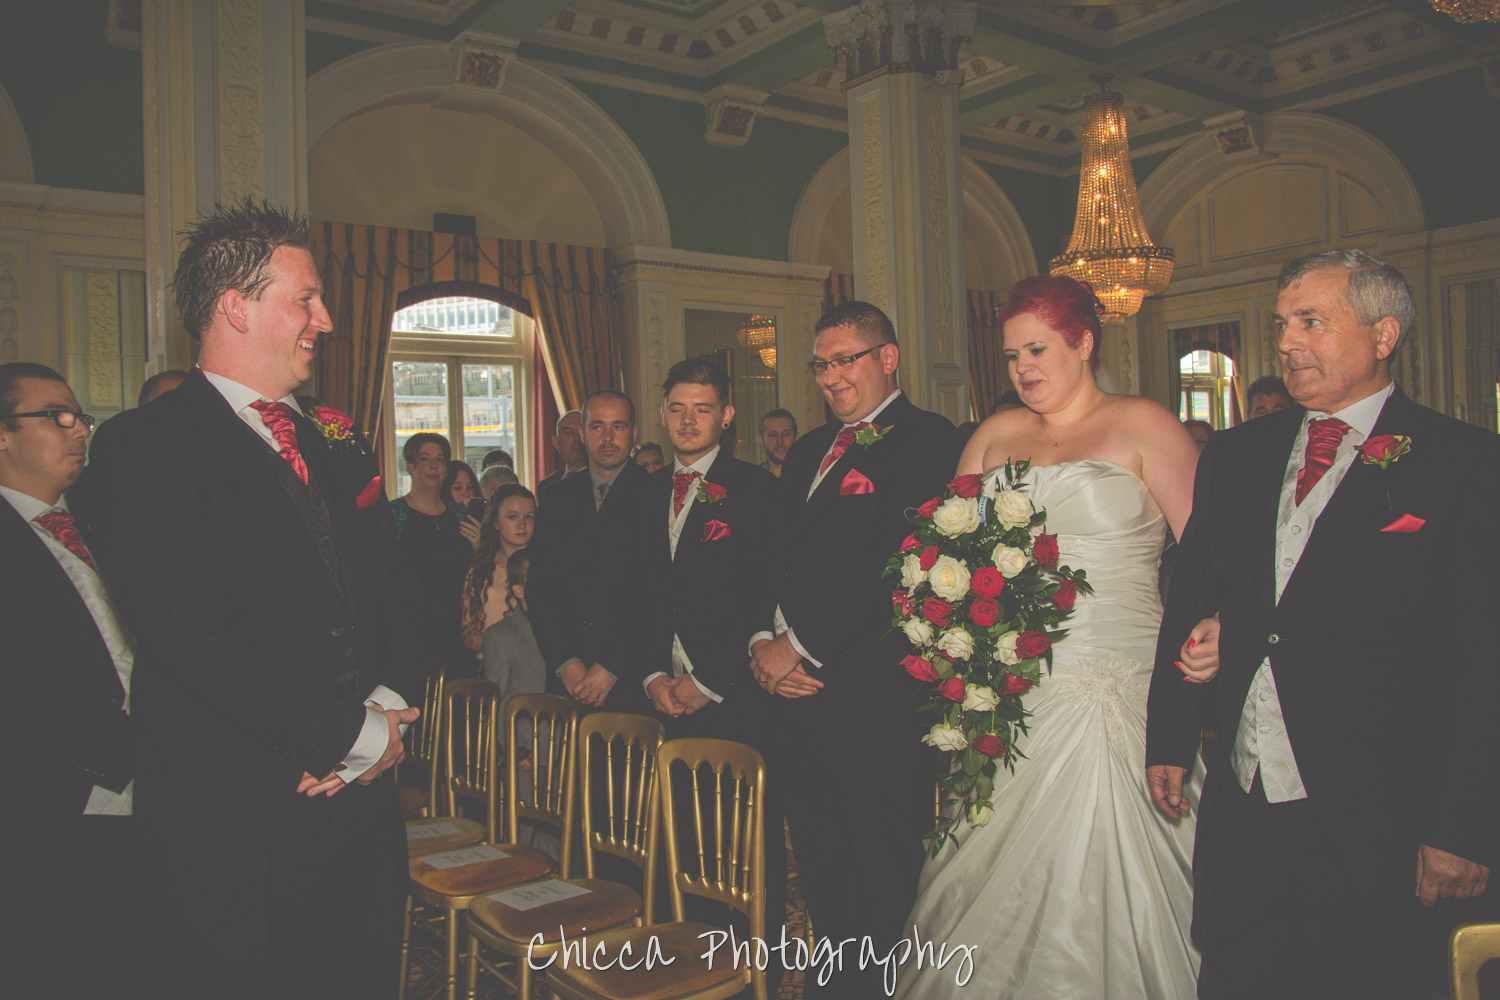 midland-hotel-bradford-wedding-photography-chicca-4.jpg